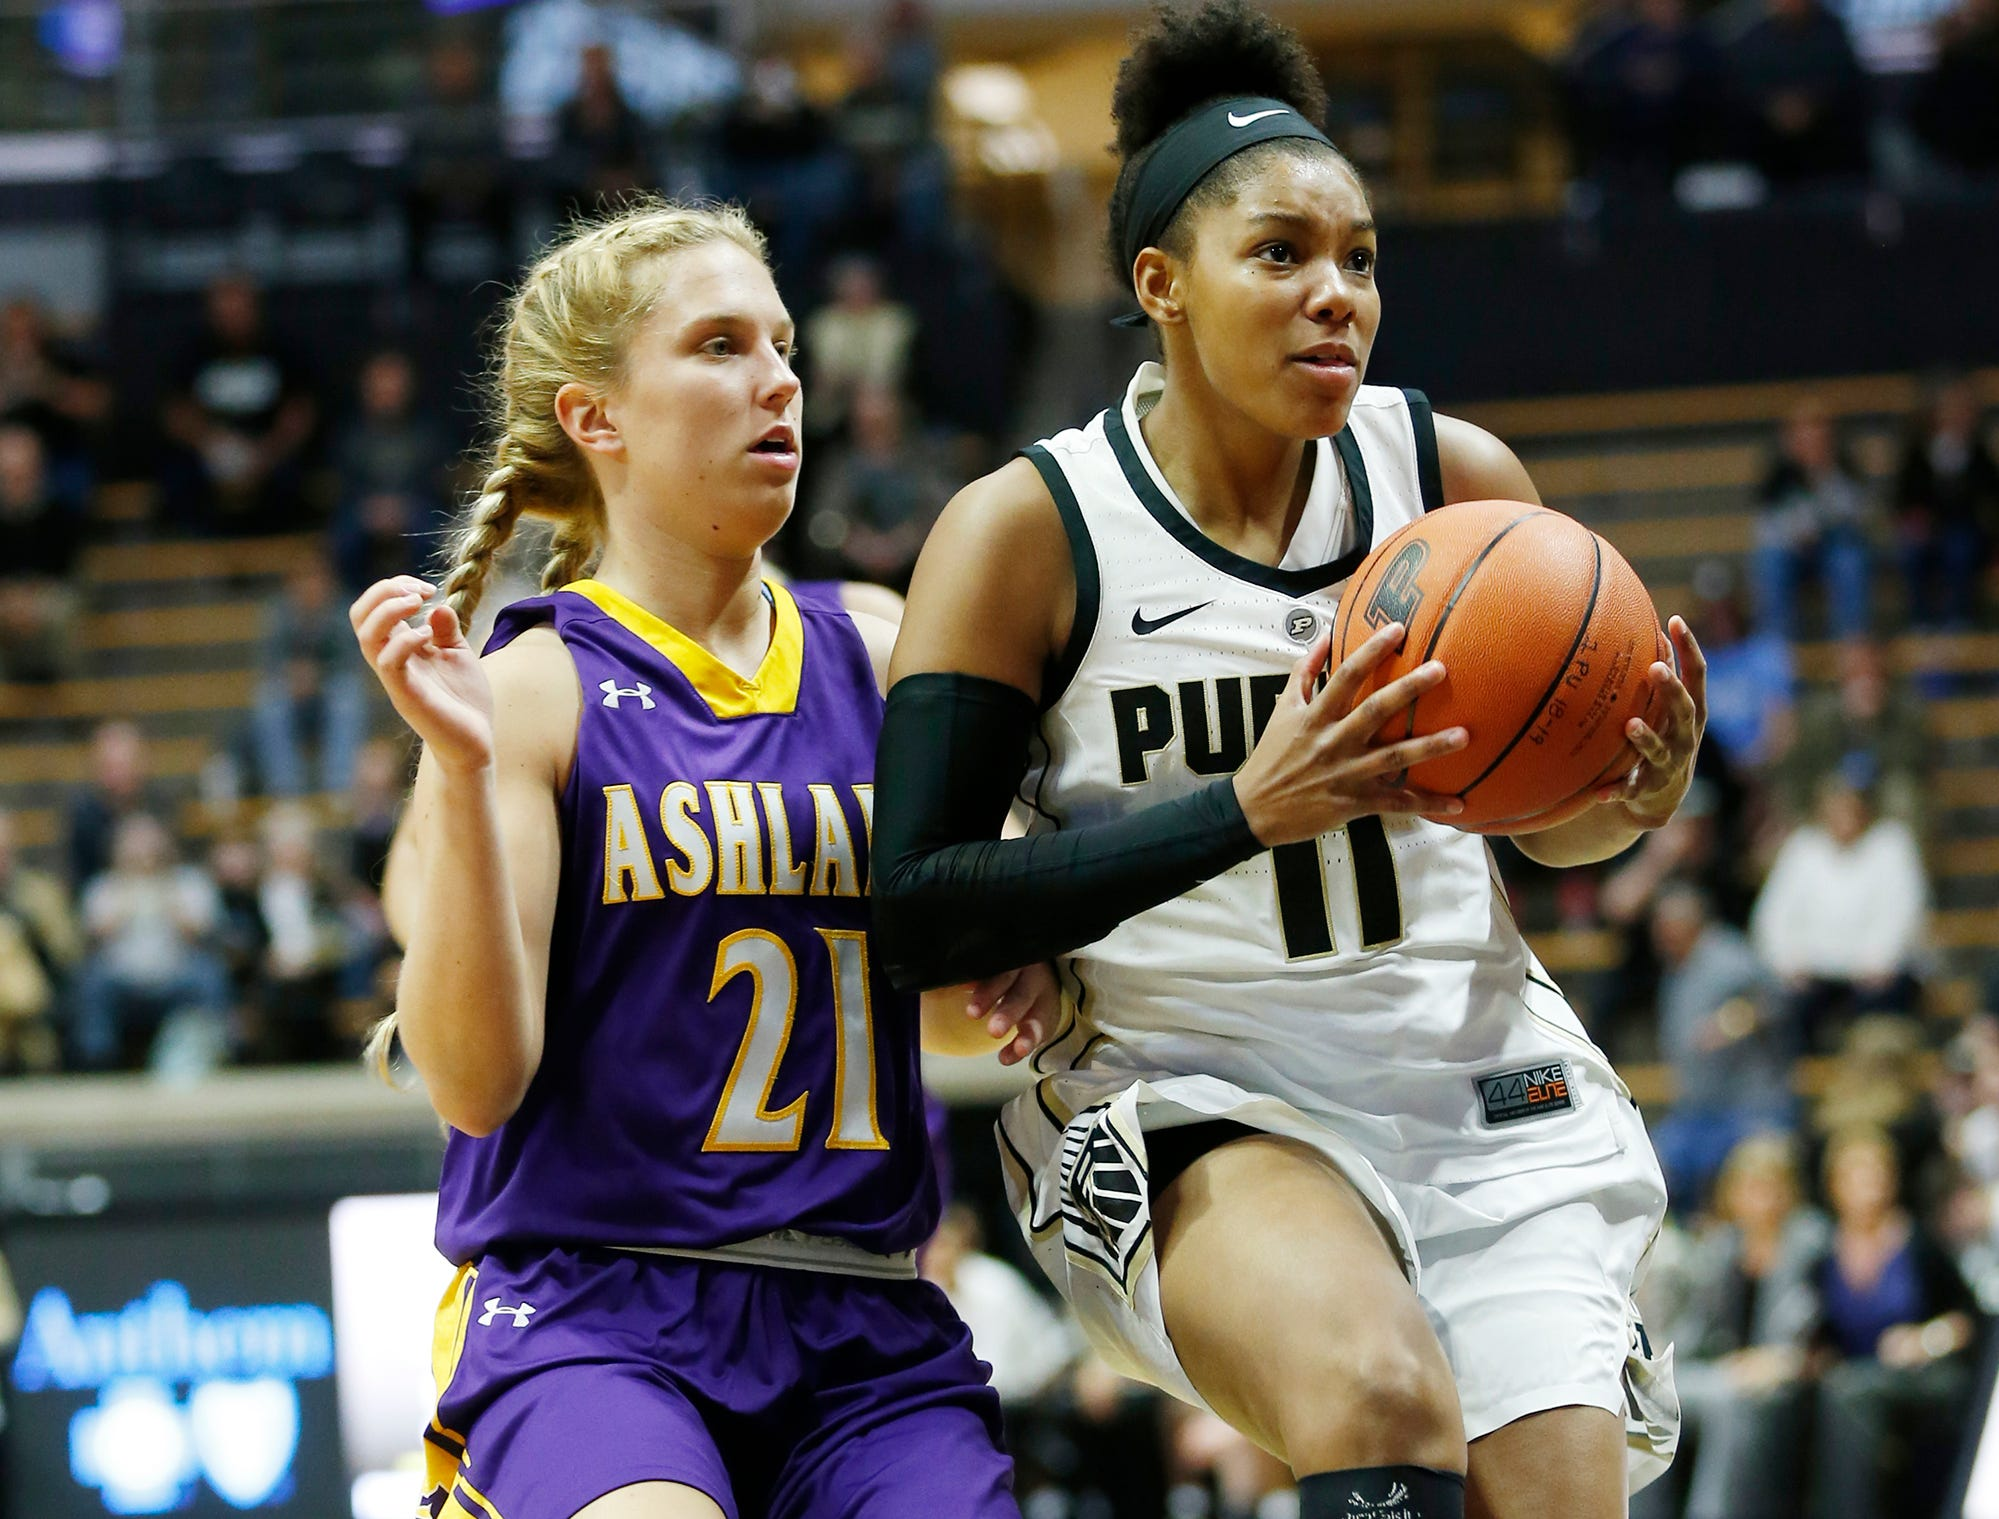 Dominique Oden of Purdue drives past Jodi Johnson of Ashland Sunday, November 4, 2018, at Mackey Arena.